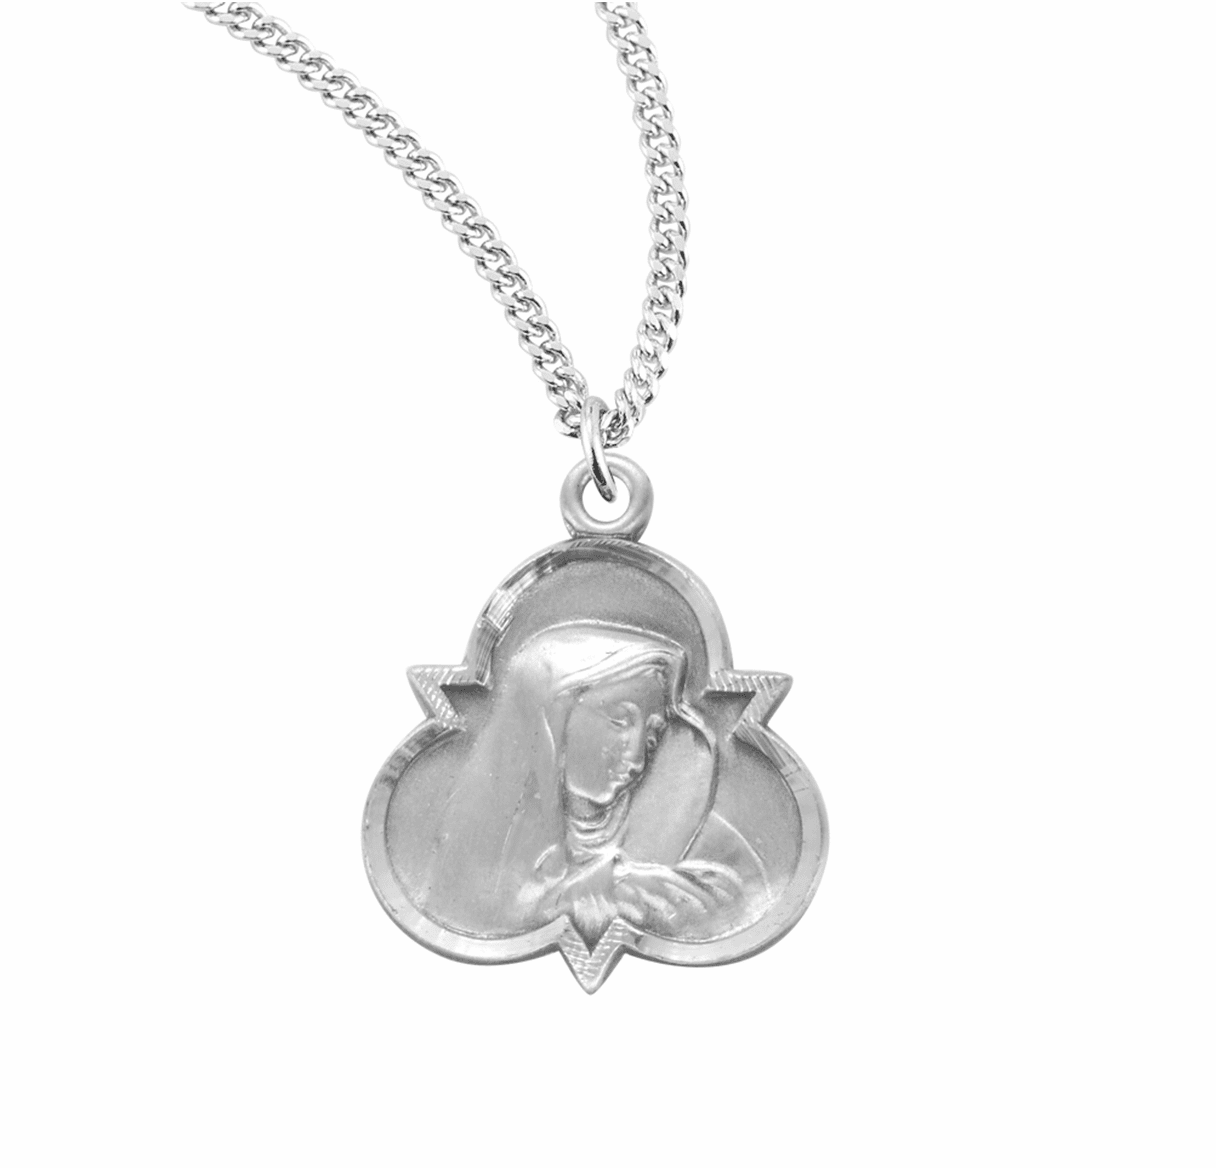 HMH Religious Trinity Sterling Silver Saint Therese of Lisieux Medal Necklace